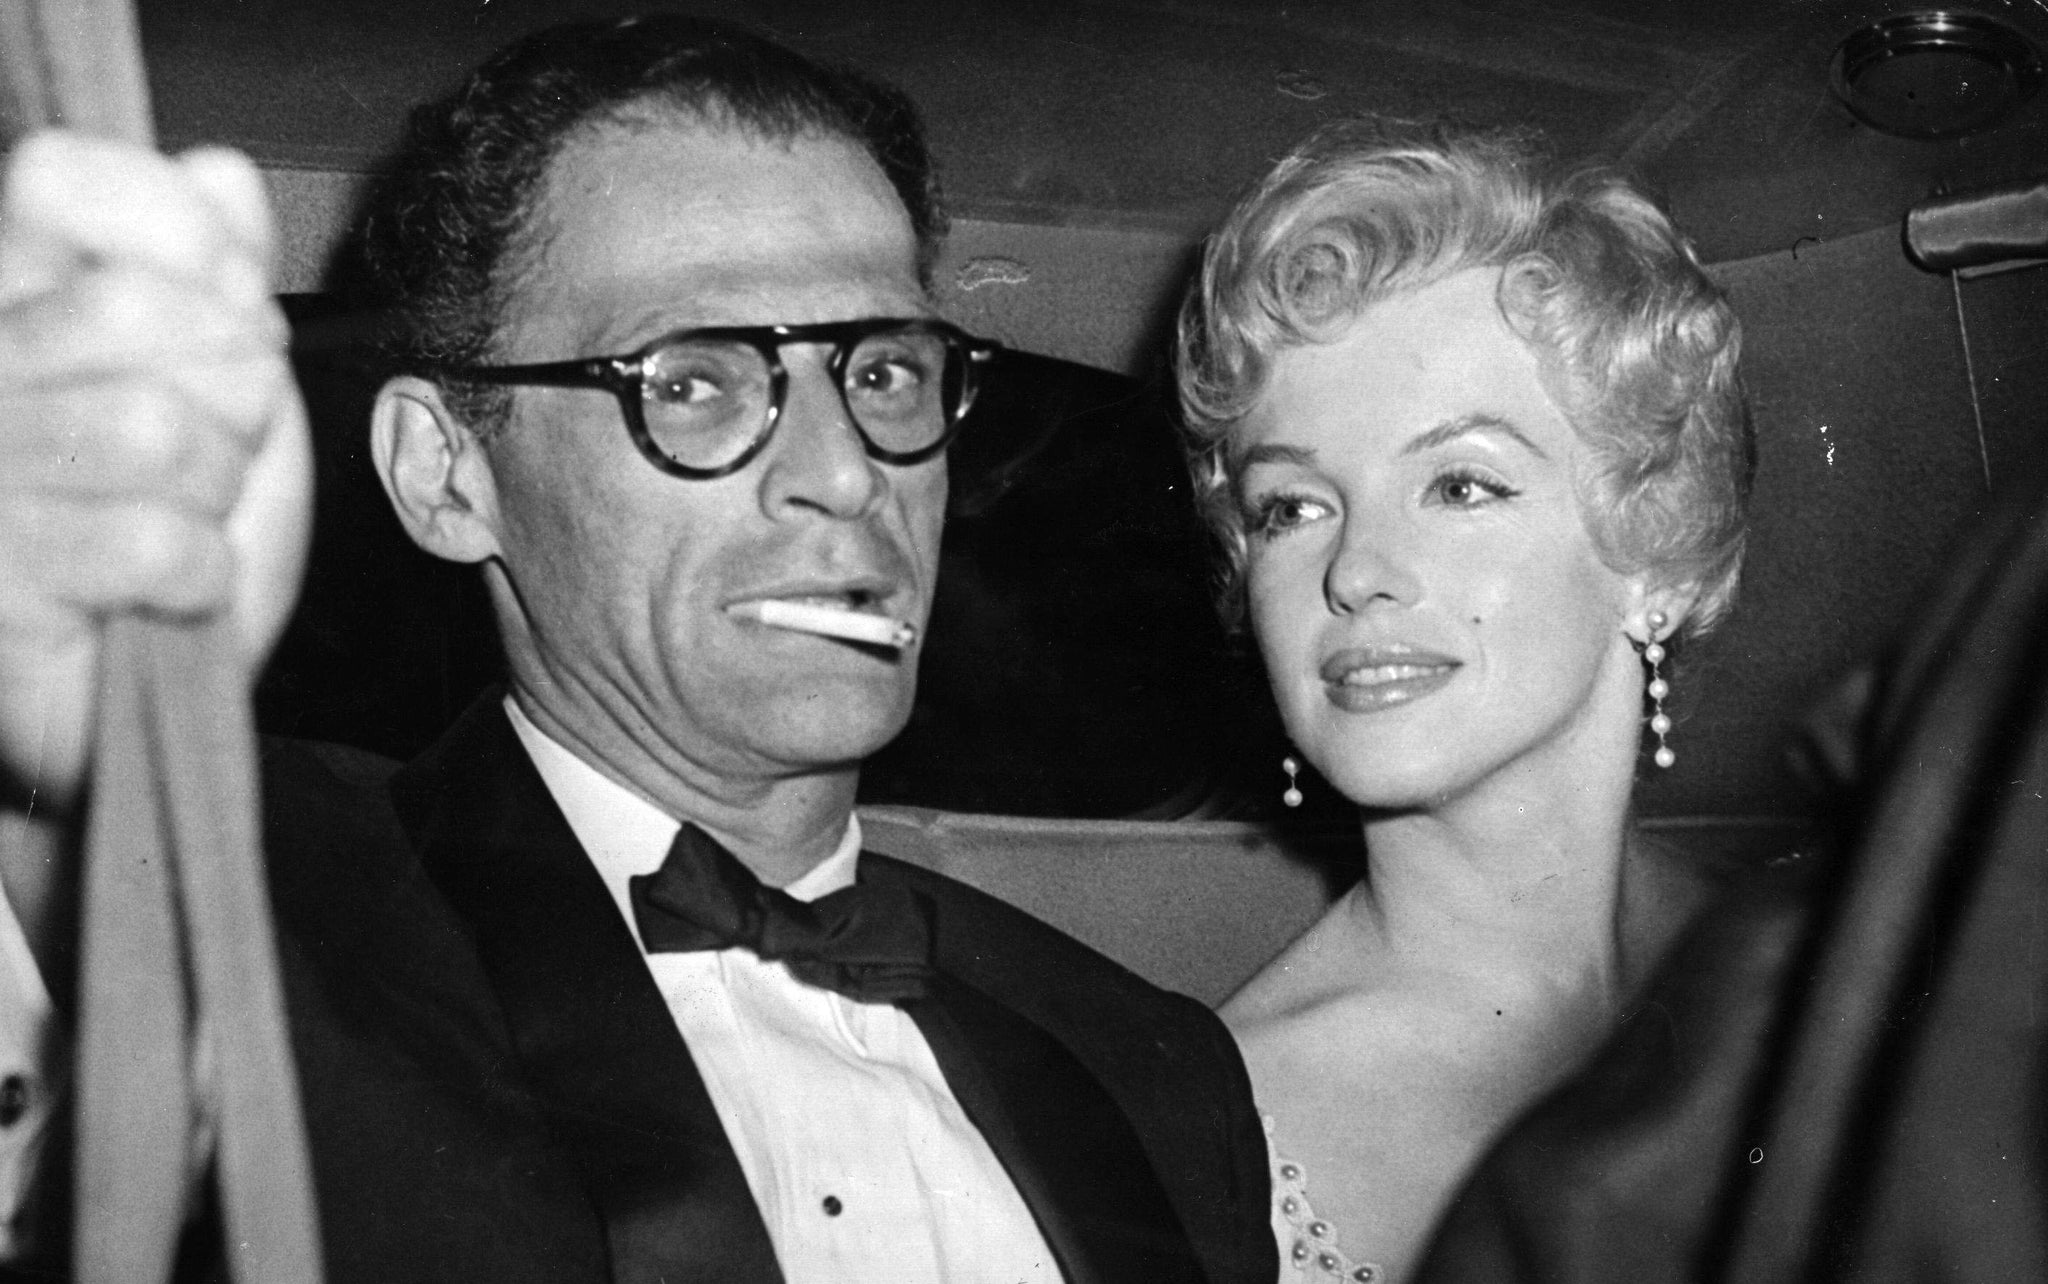 Vintage photo of Arthur Miller and Marilyn Monroe